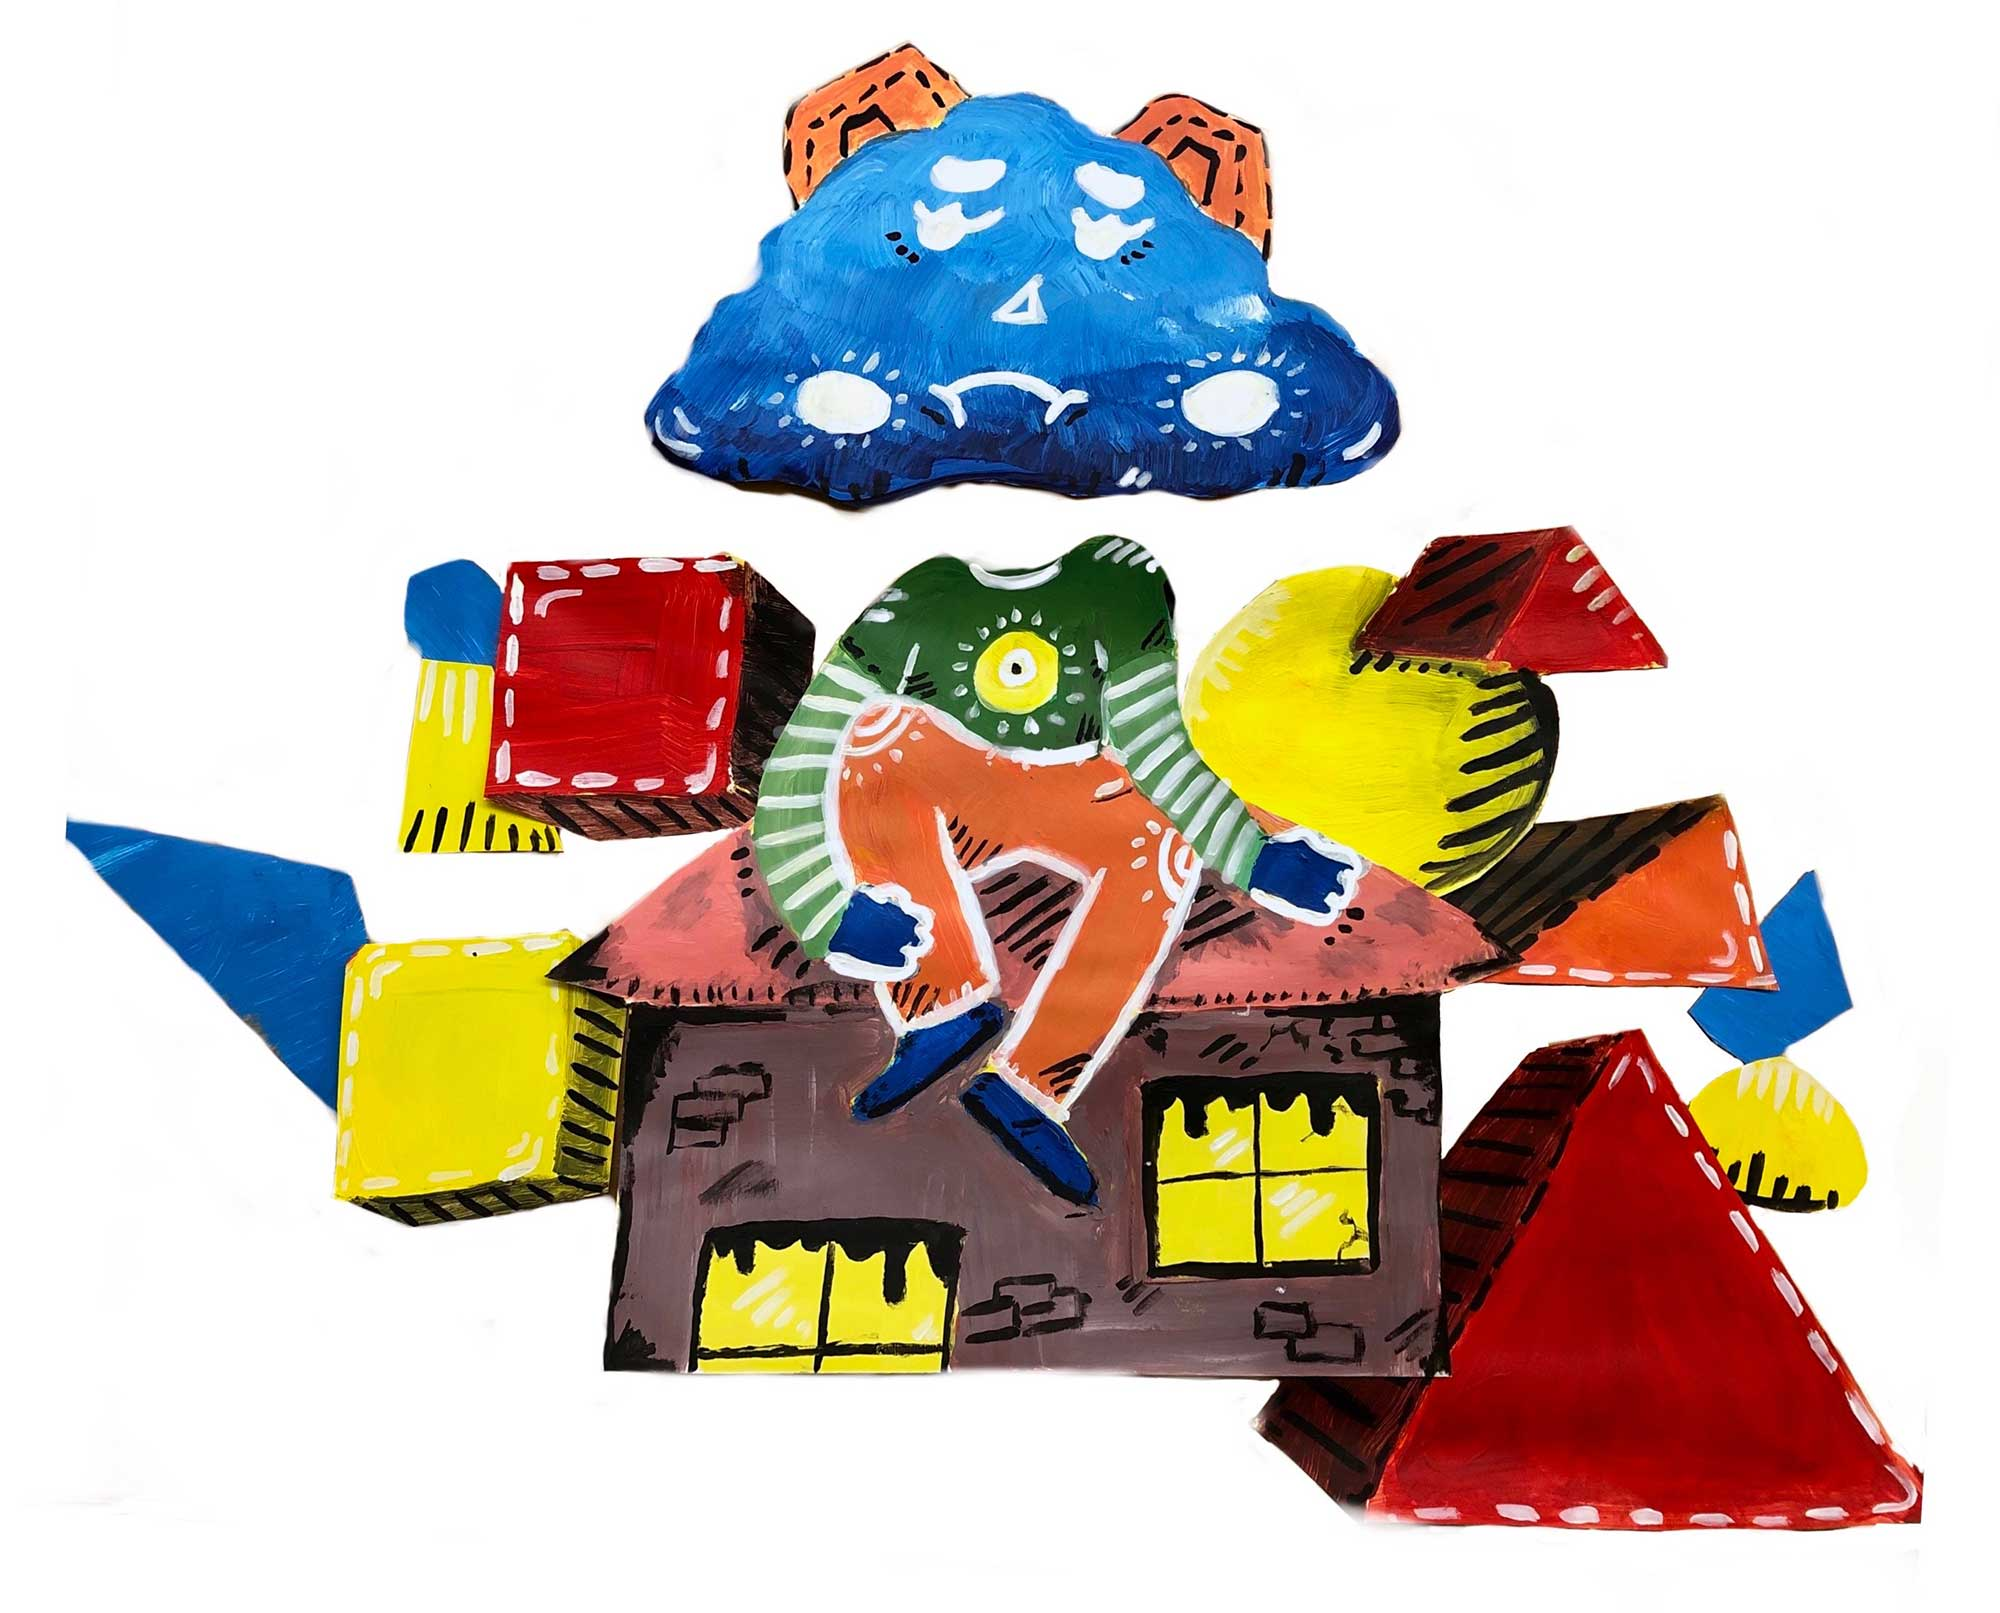 CLoud Man Sitting on a house surrounded by 3D blocks and triangles